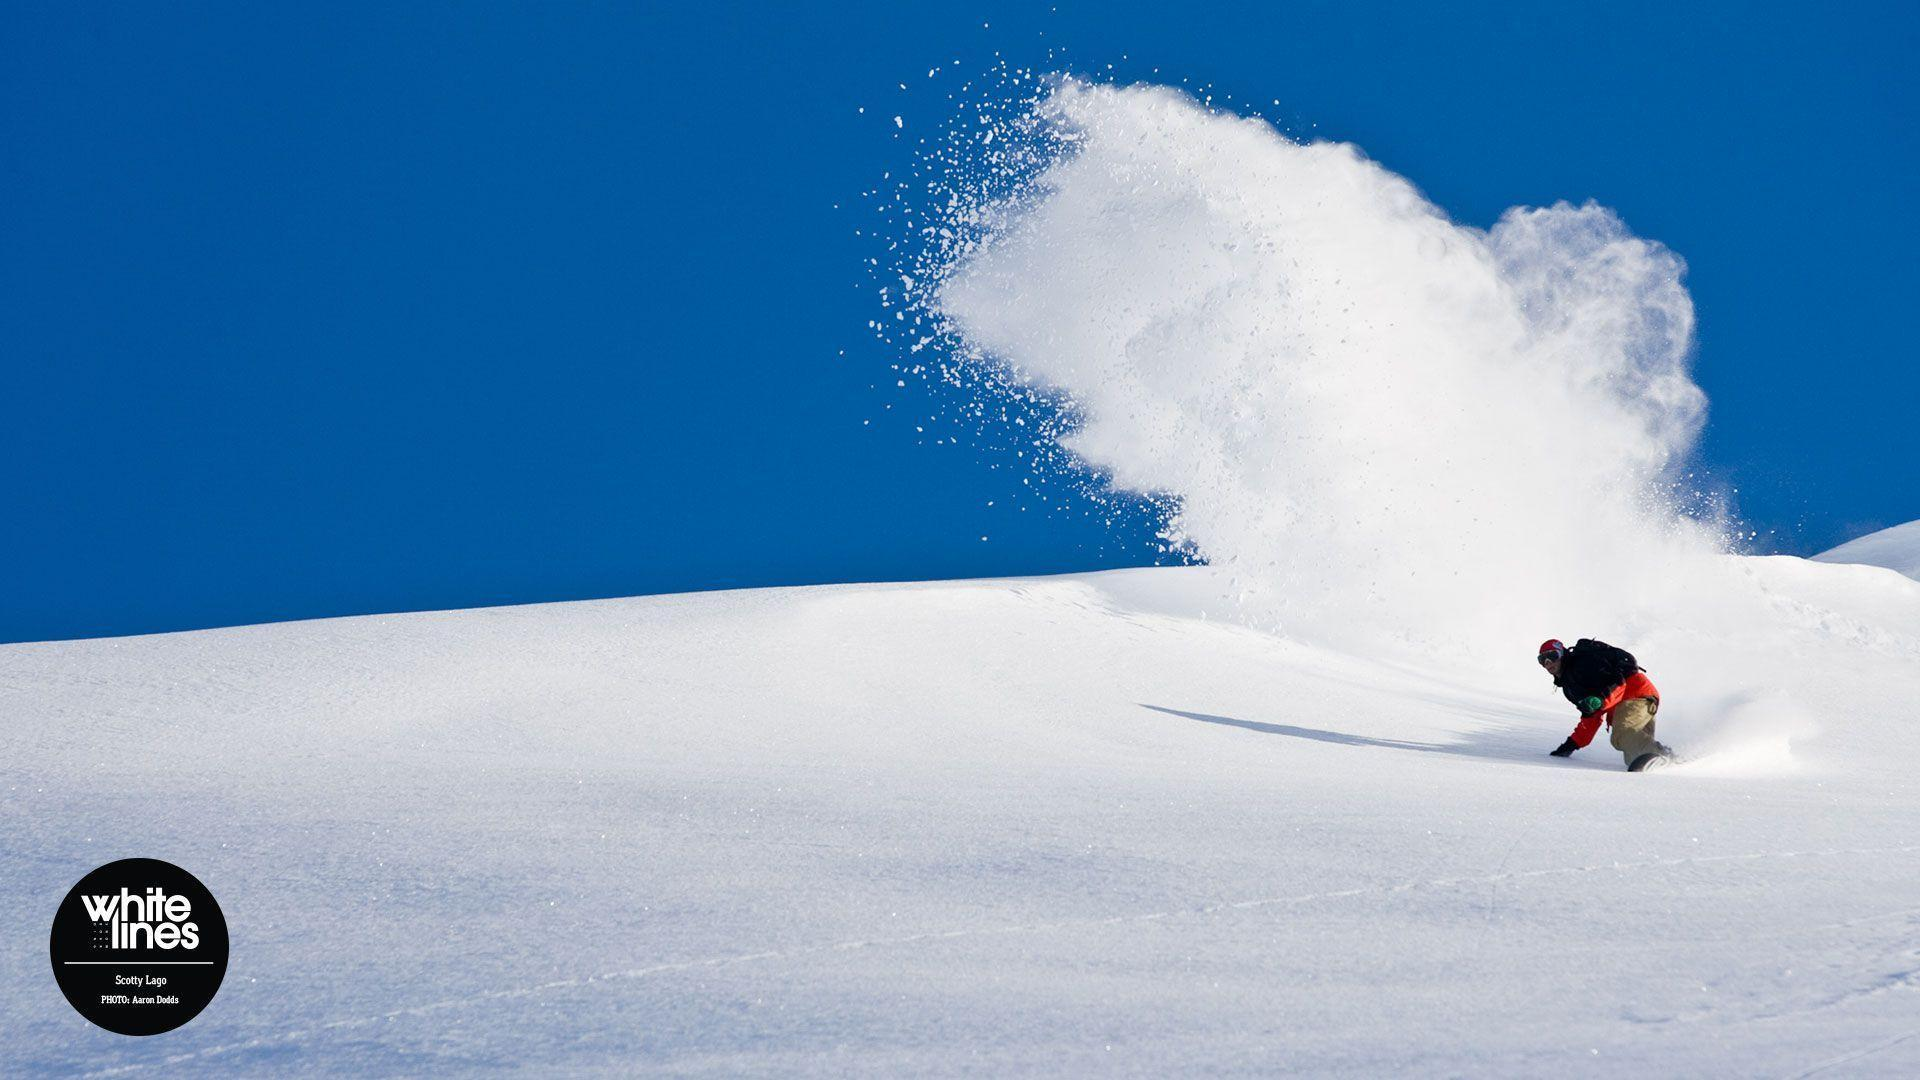 snowboard outdoor wallpaper desktop - photo #16